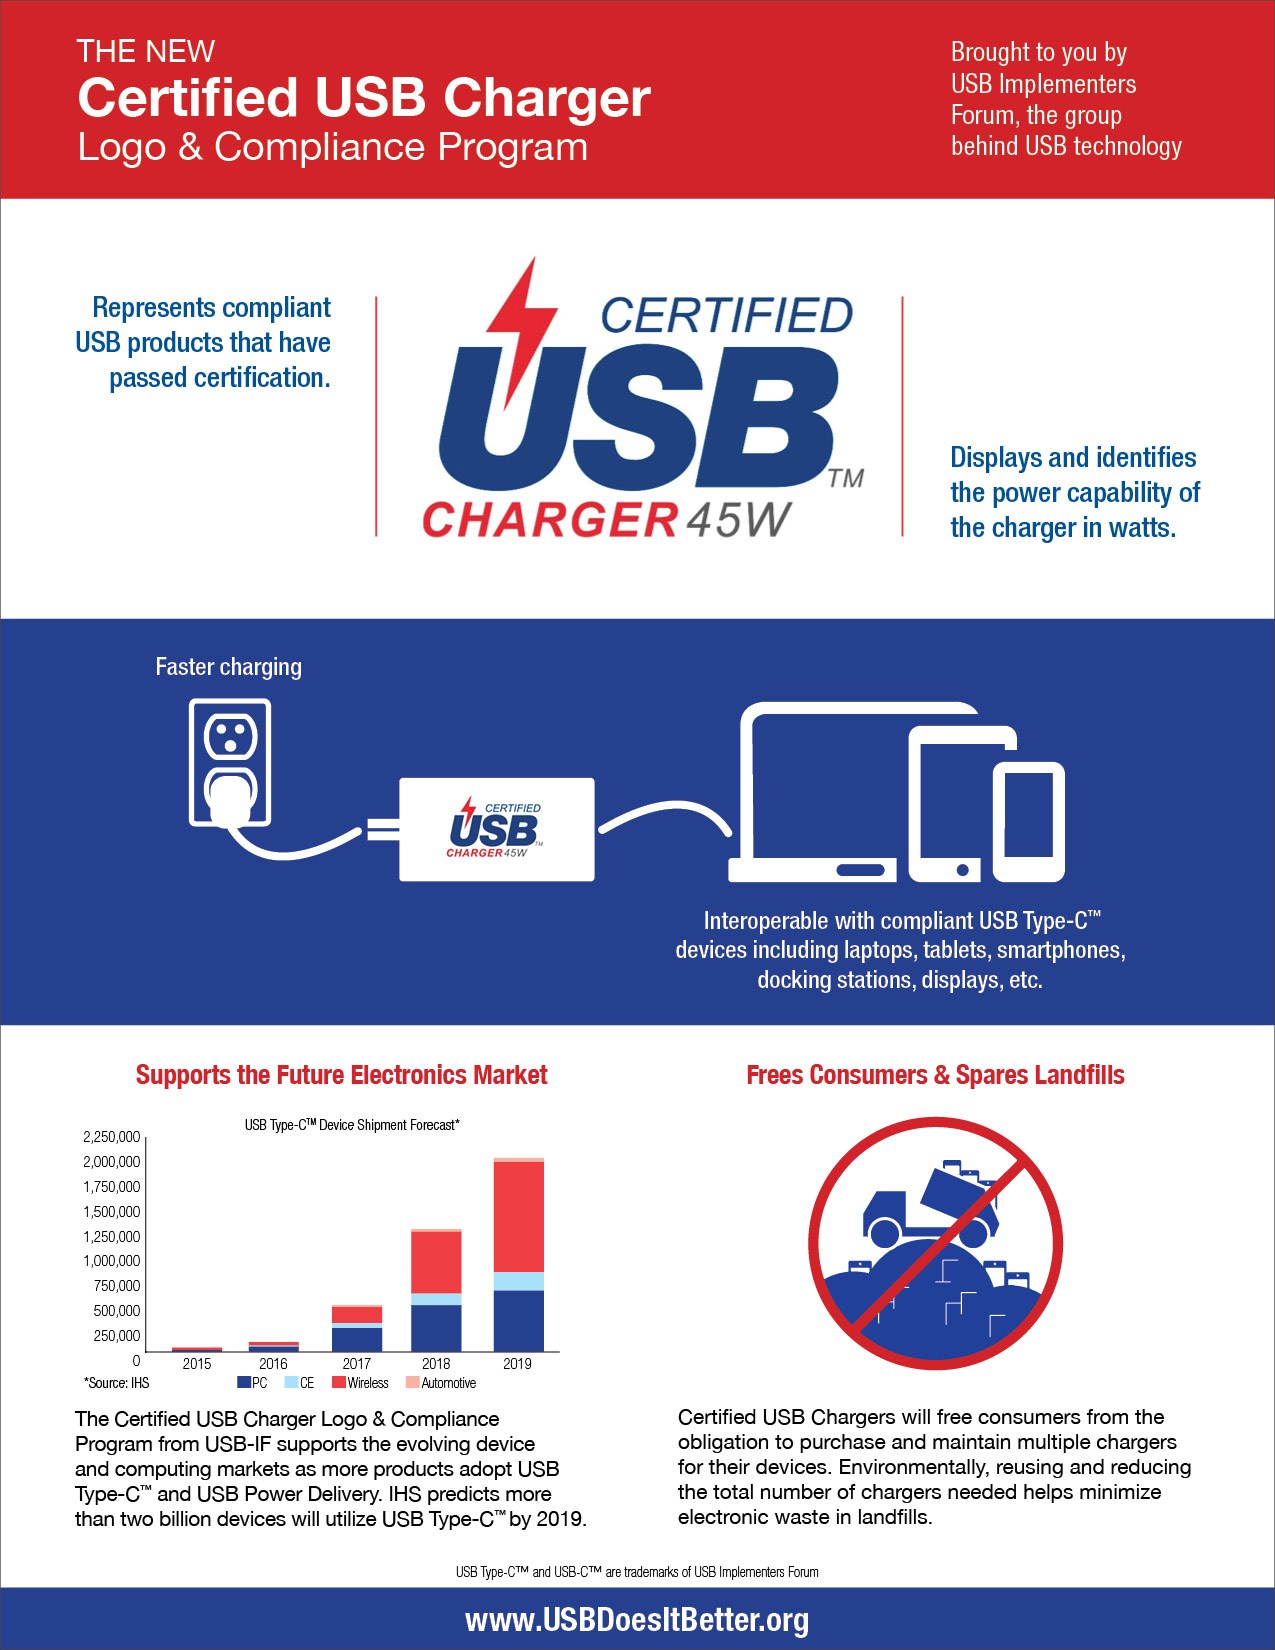 Certified USB Charger Logo and Compliance Program Infographic courtesy of USB Implementers Forum